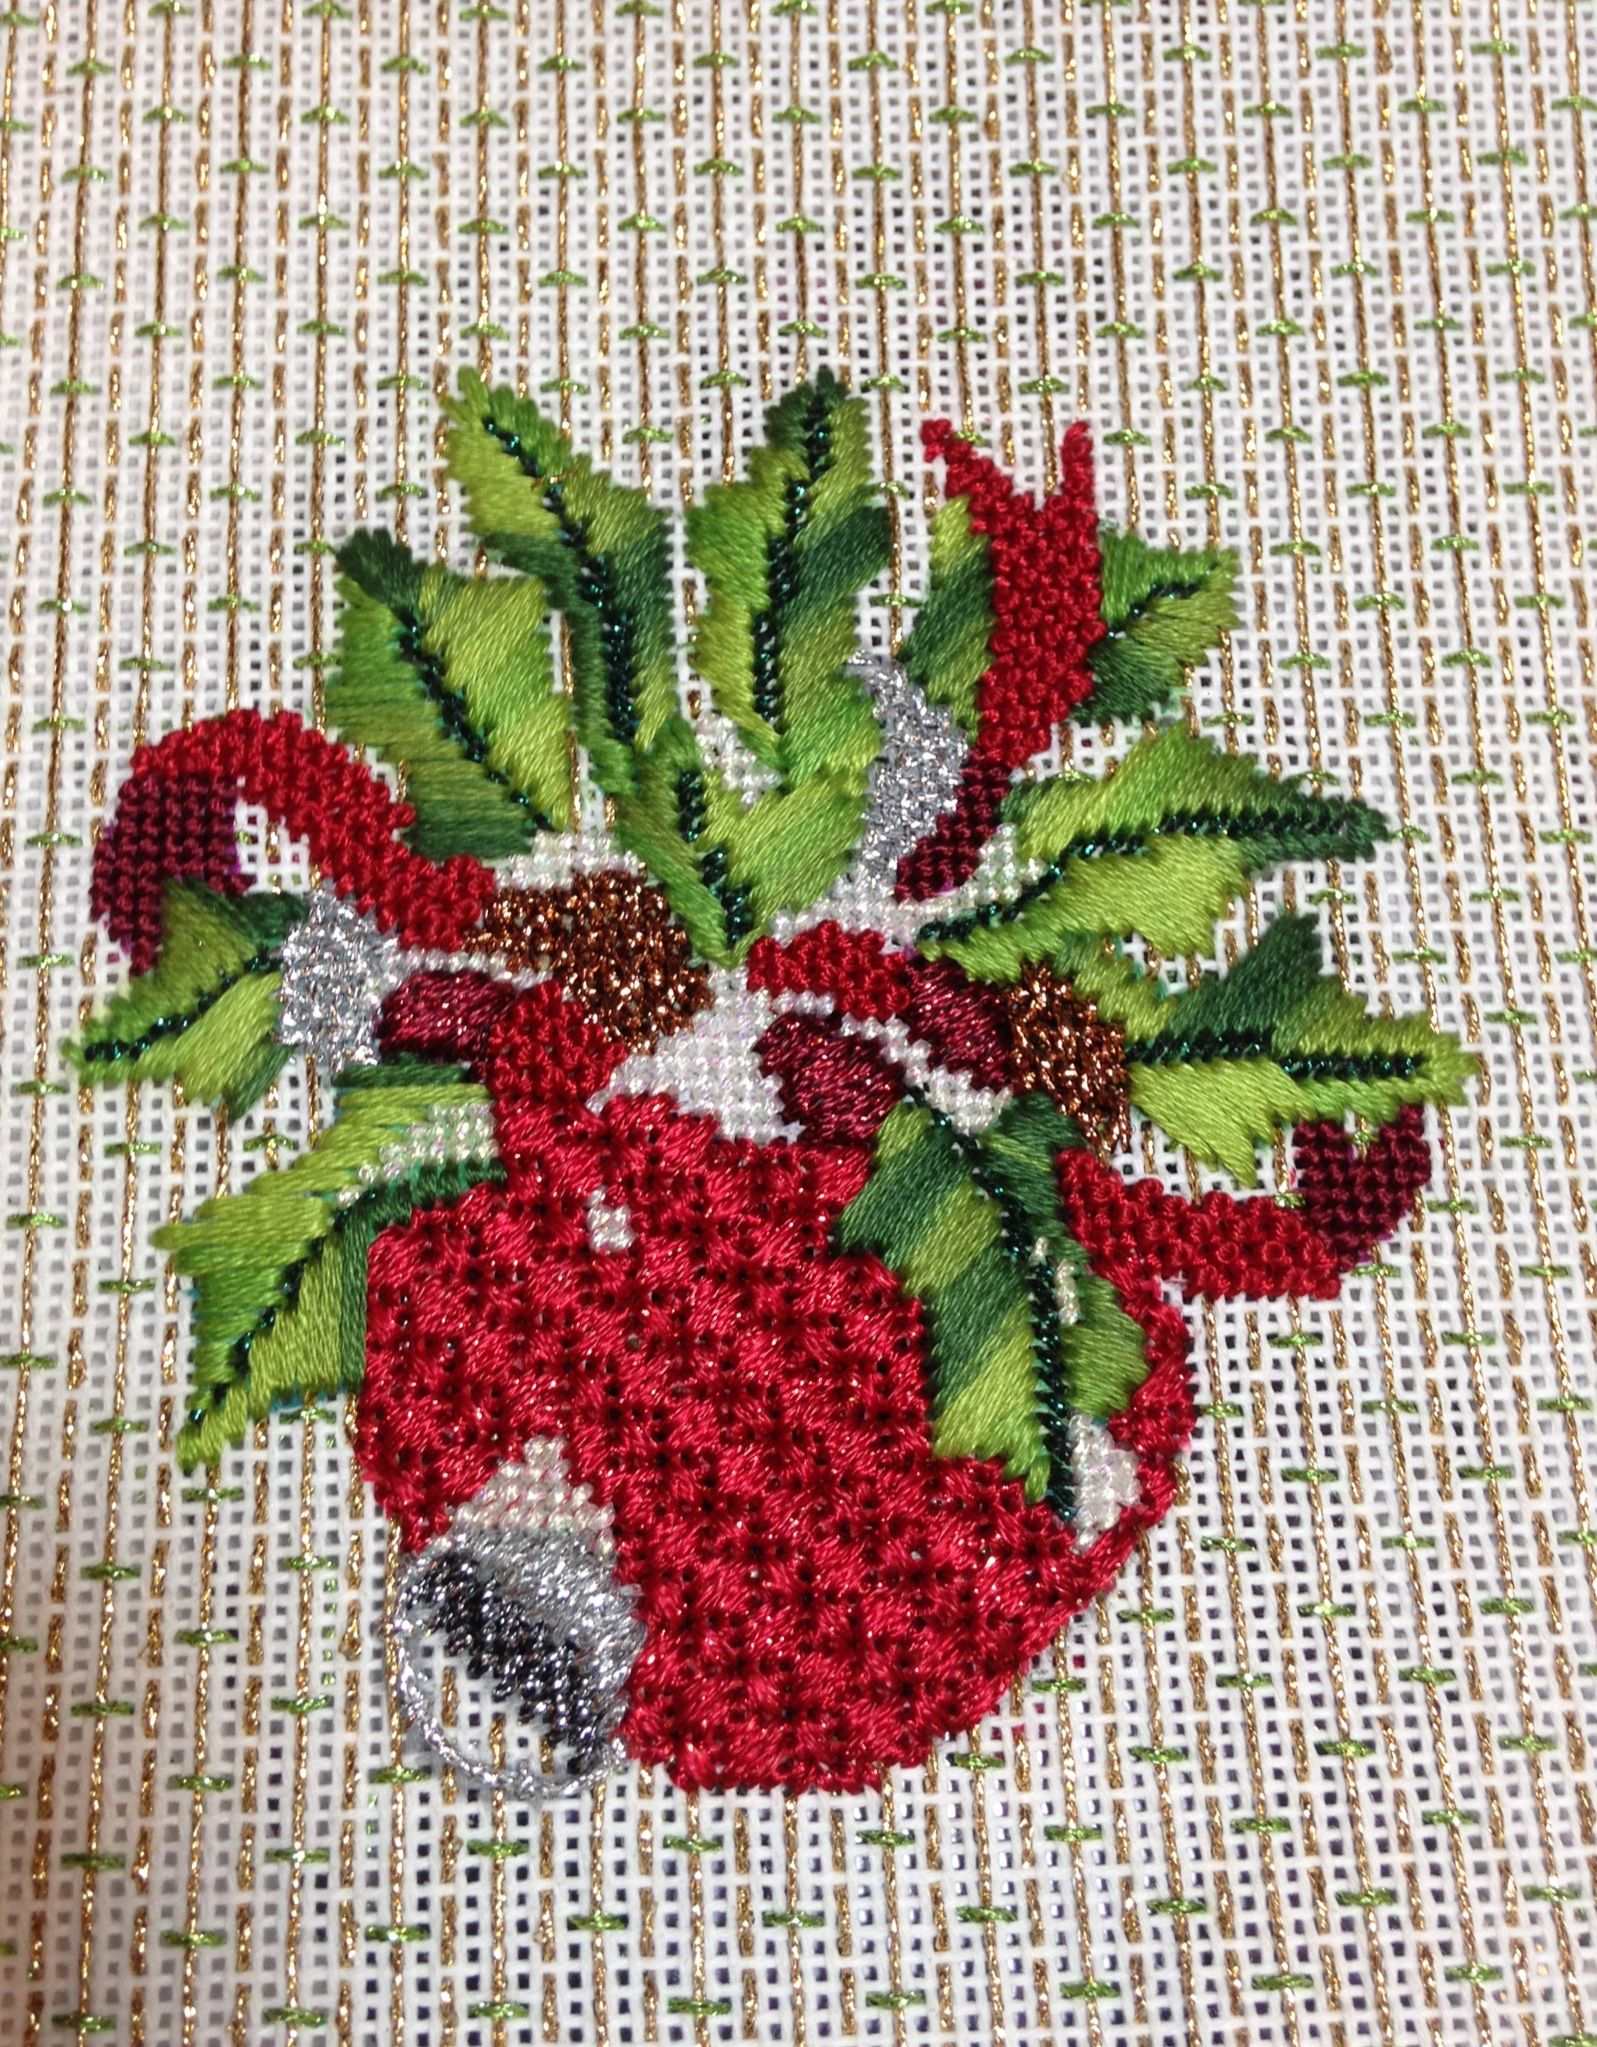 December flower of the month, holly needlepoint